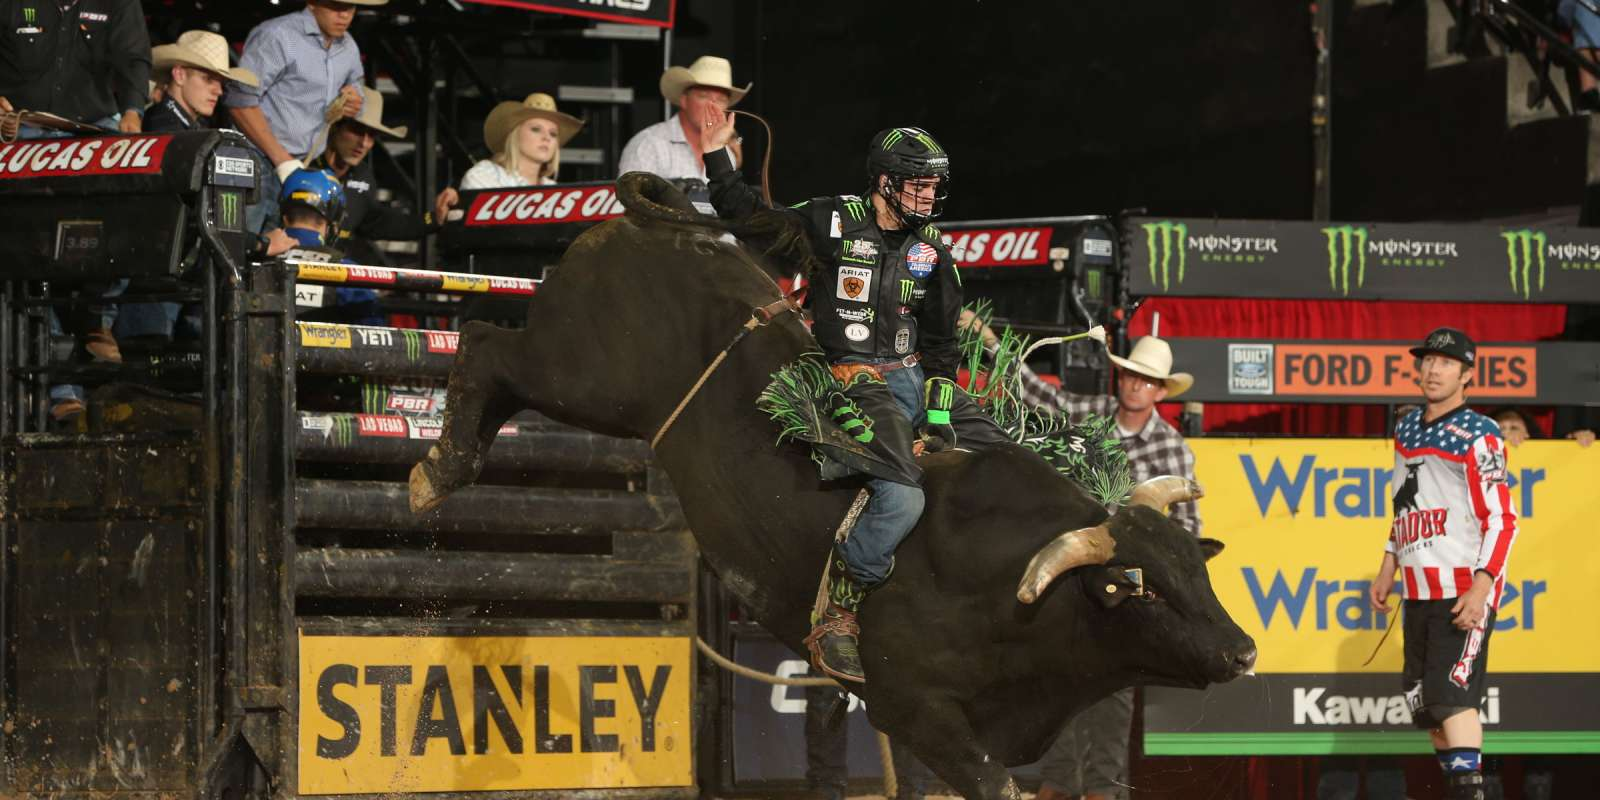 Images from 2018 PBR Las Vegas, Nevada